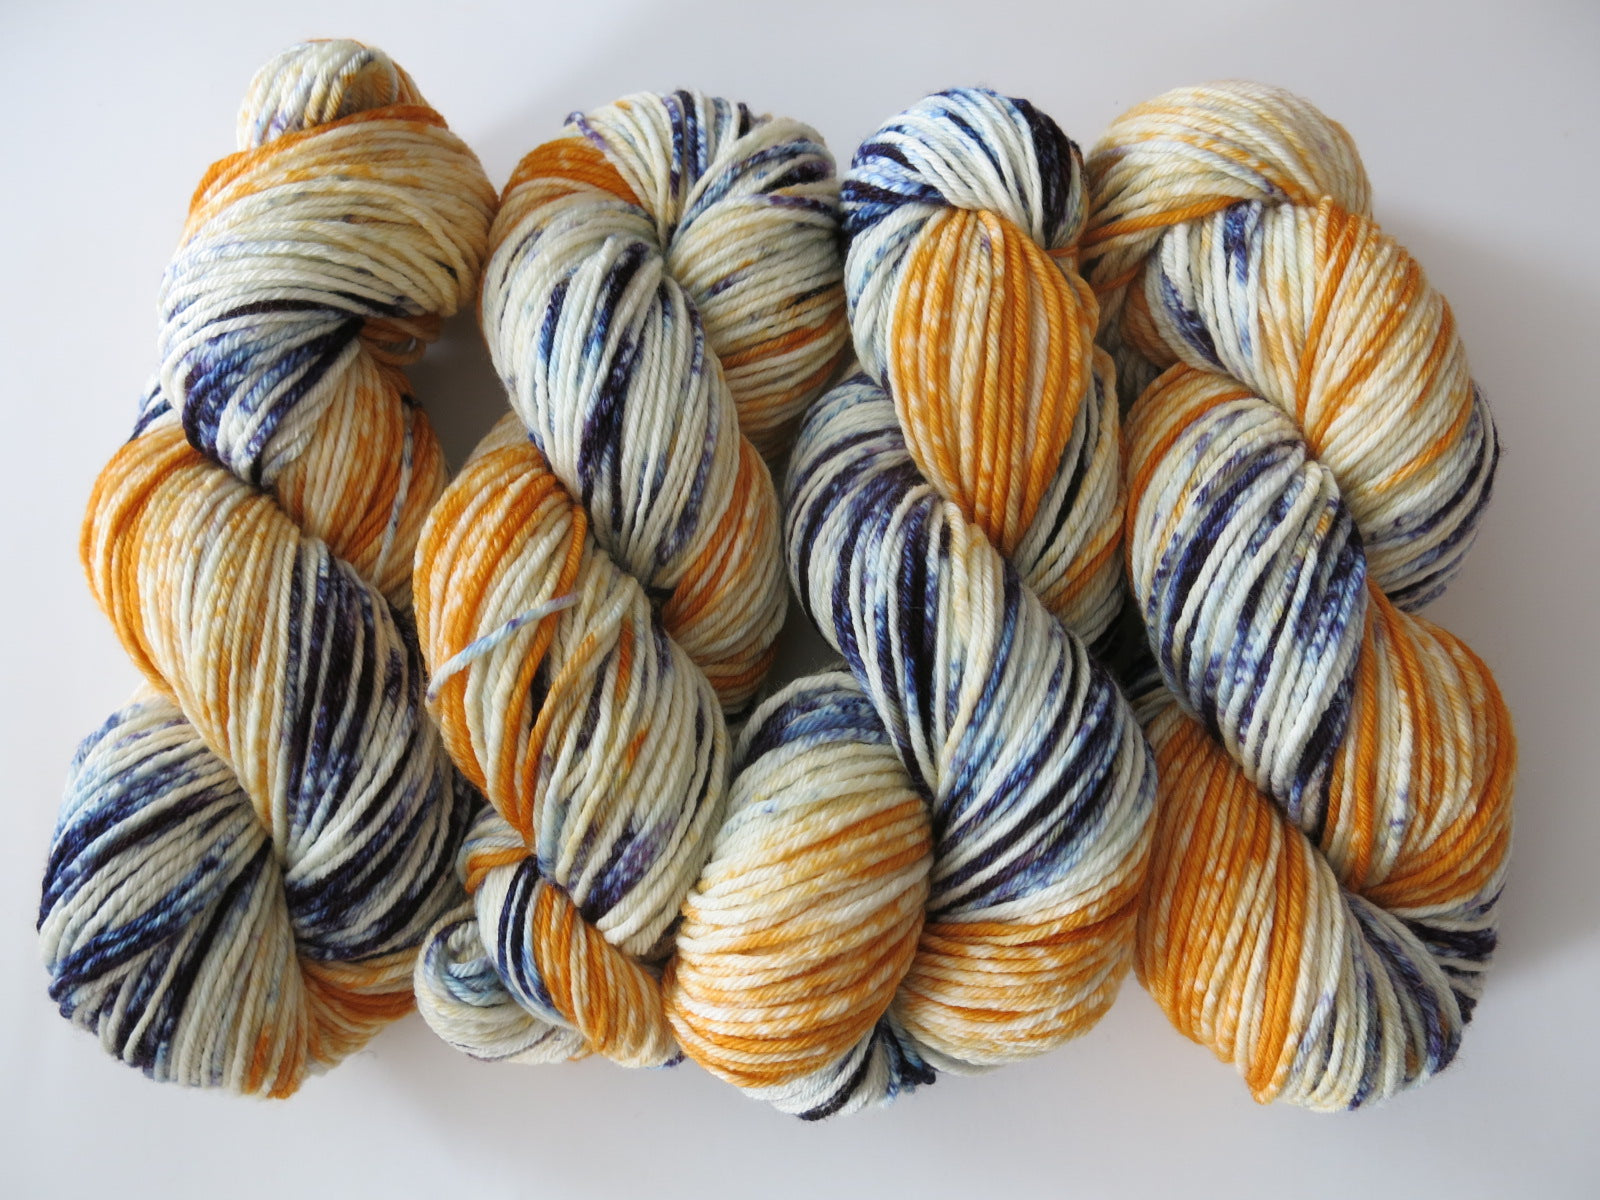 indie dyed 115g skeins of merino aran yarn for knitting and crochet